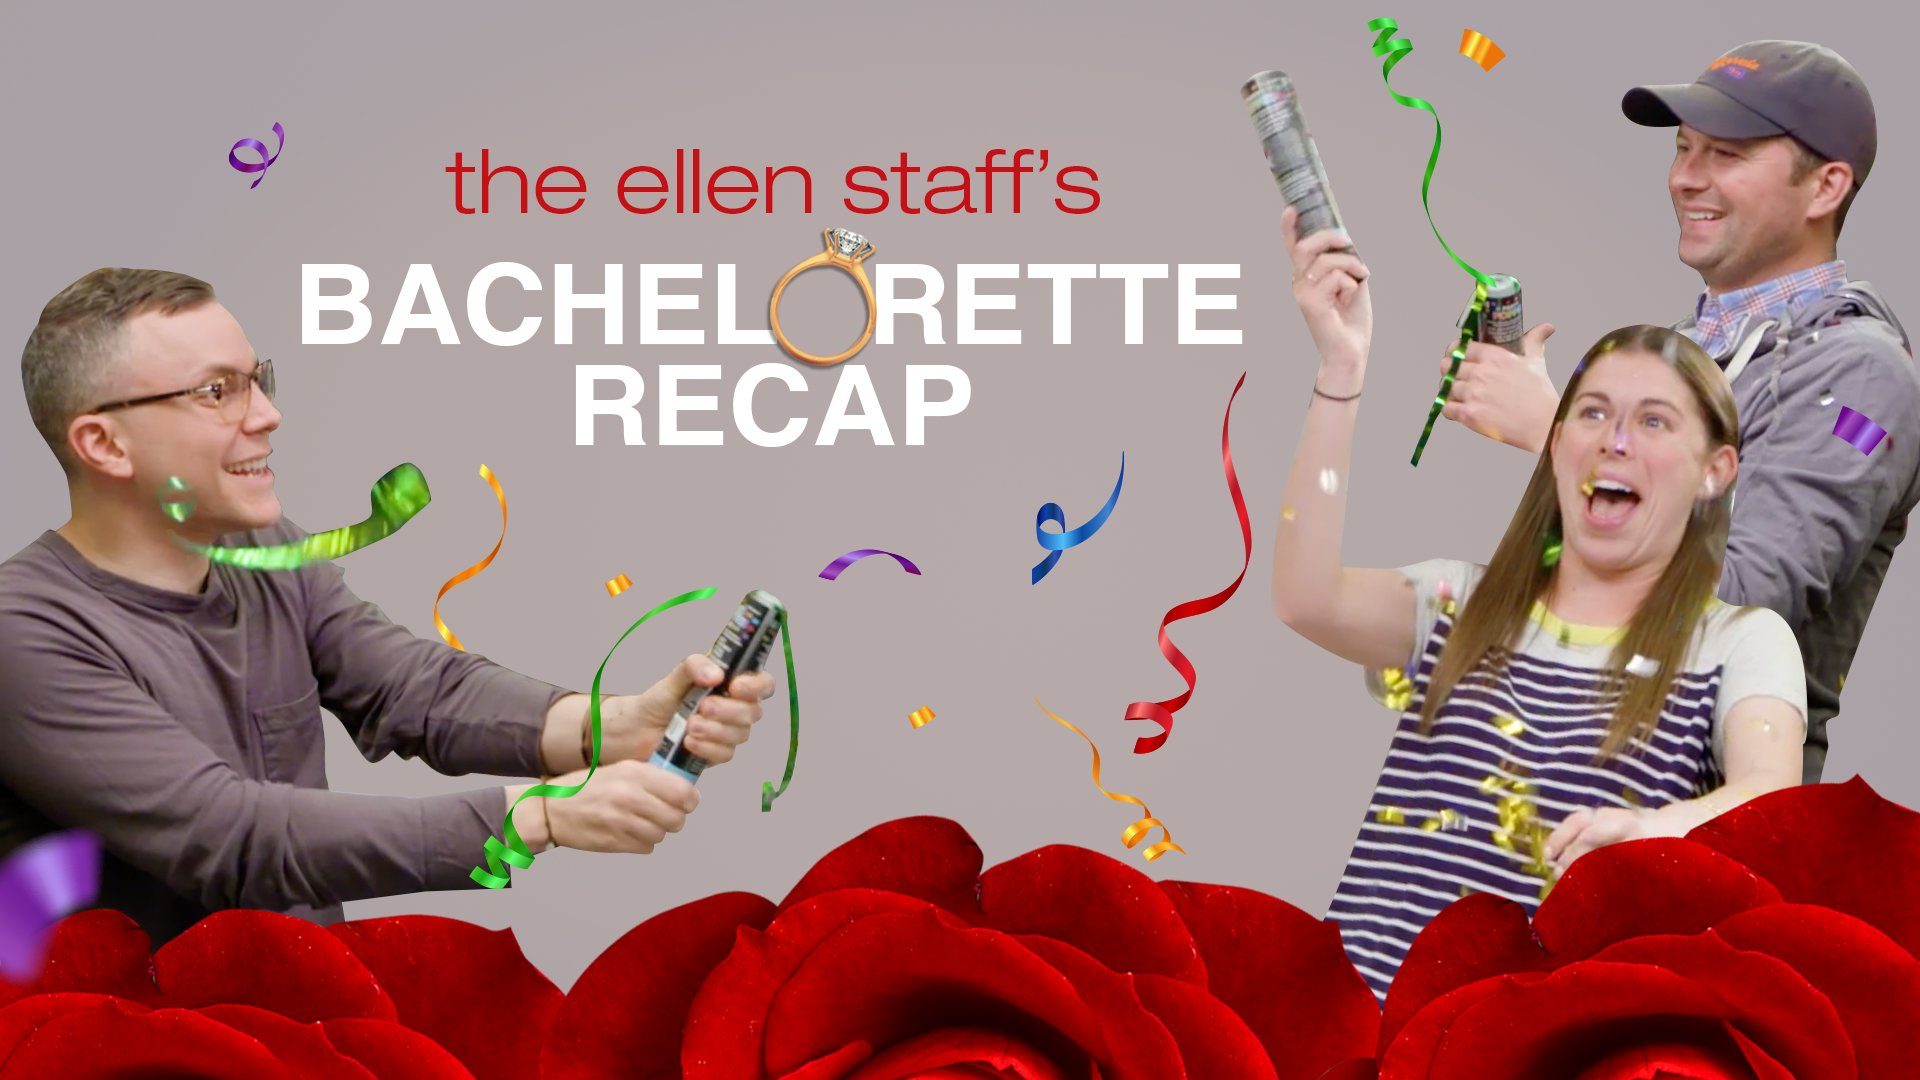 #TheBachelorette is BACK, and so is my staff recap! Who are your top picks this season? https://t.co/3h3wYfdSNg https://t.co/stngILAuCy